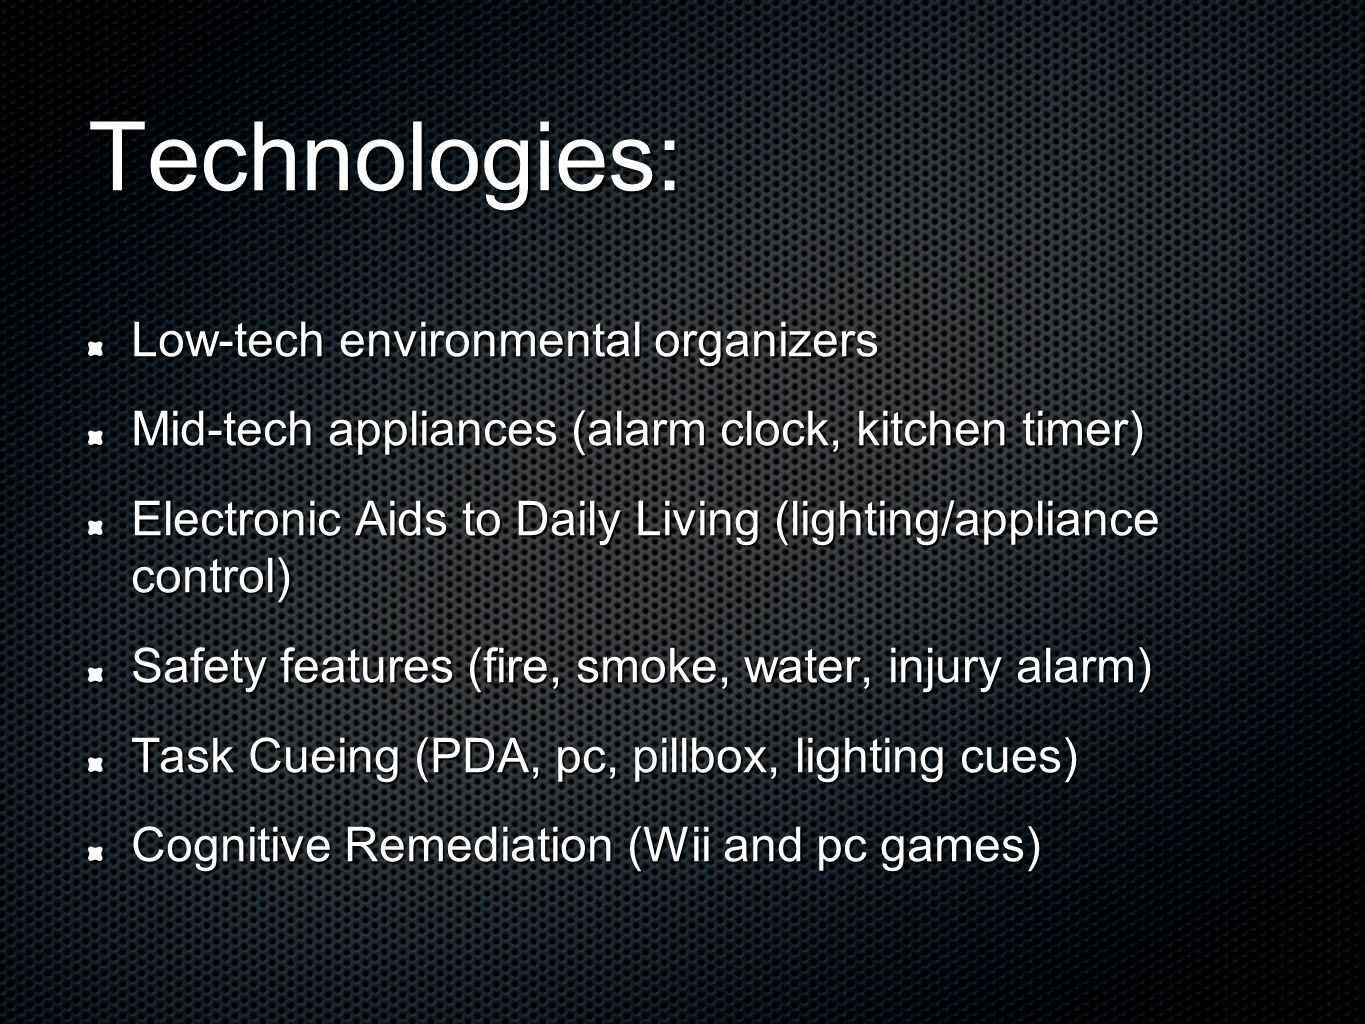 Technologies: Low-tech environmental organizers Mid-tech appliances (alarm clock, kitchen timer) Electronic Aids to Daily Living (lighting/appliance control) Safety features (fire, smoke, water, injury alarm) Task Cueing (PDA, pc, pillbox, lighting cues) Cognitive Remediation (Wii and pc games)